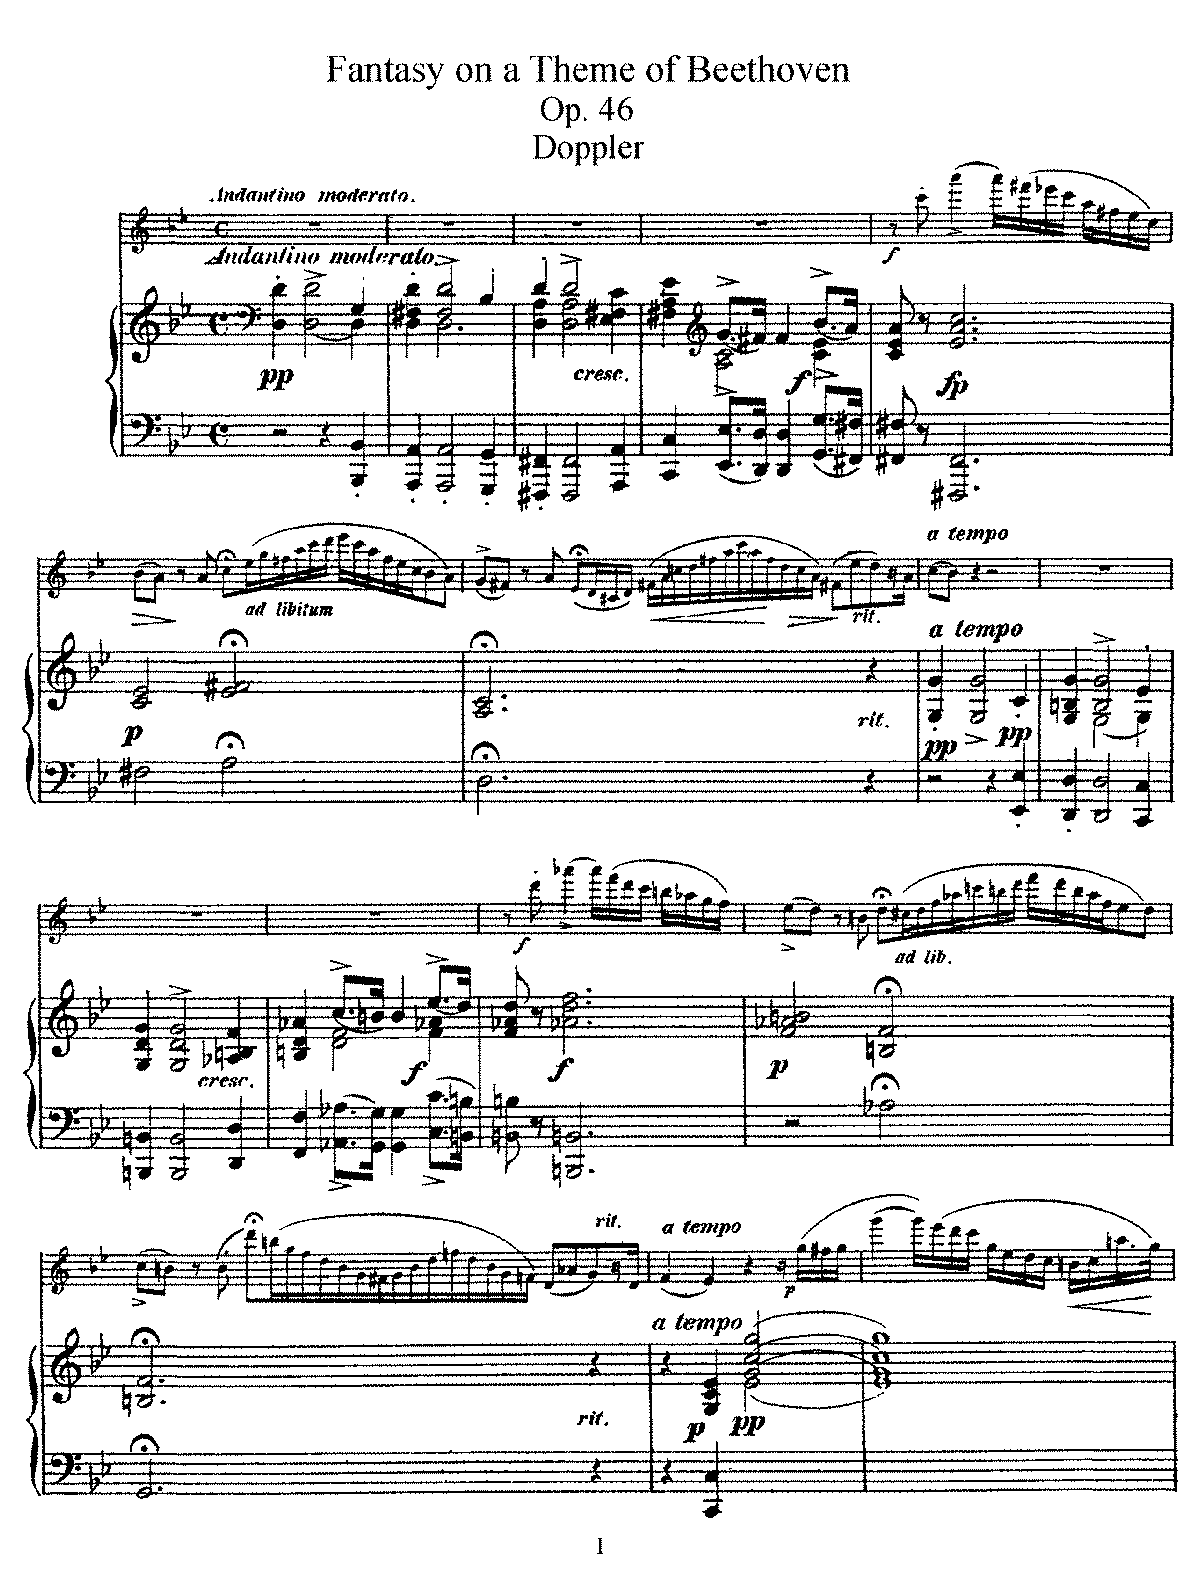 Fantaisie on a Theme by Beethoven, Op 46.pdf